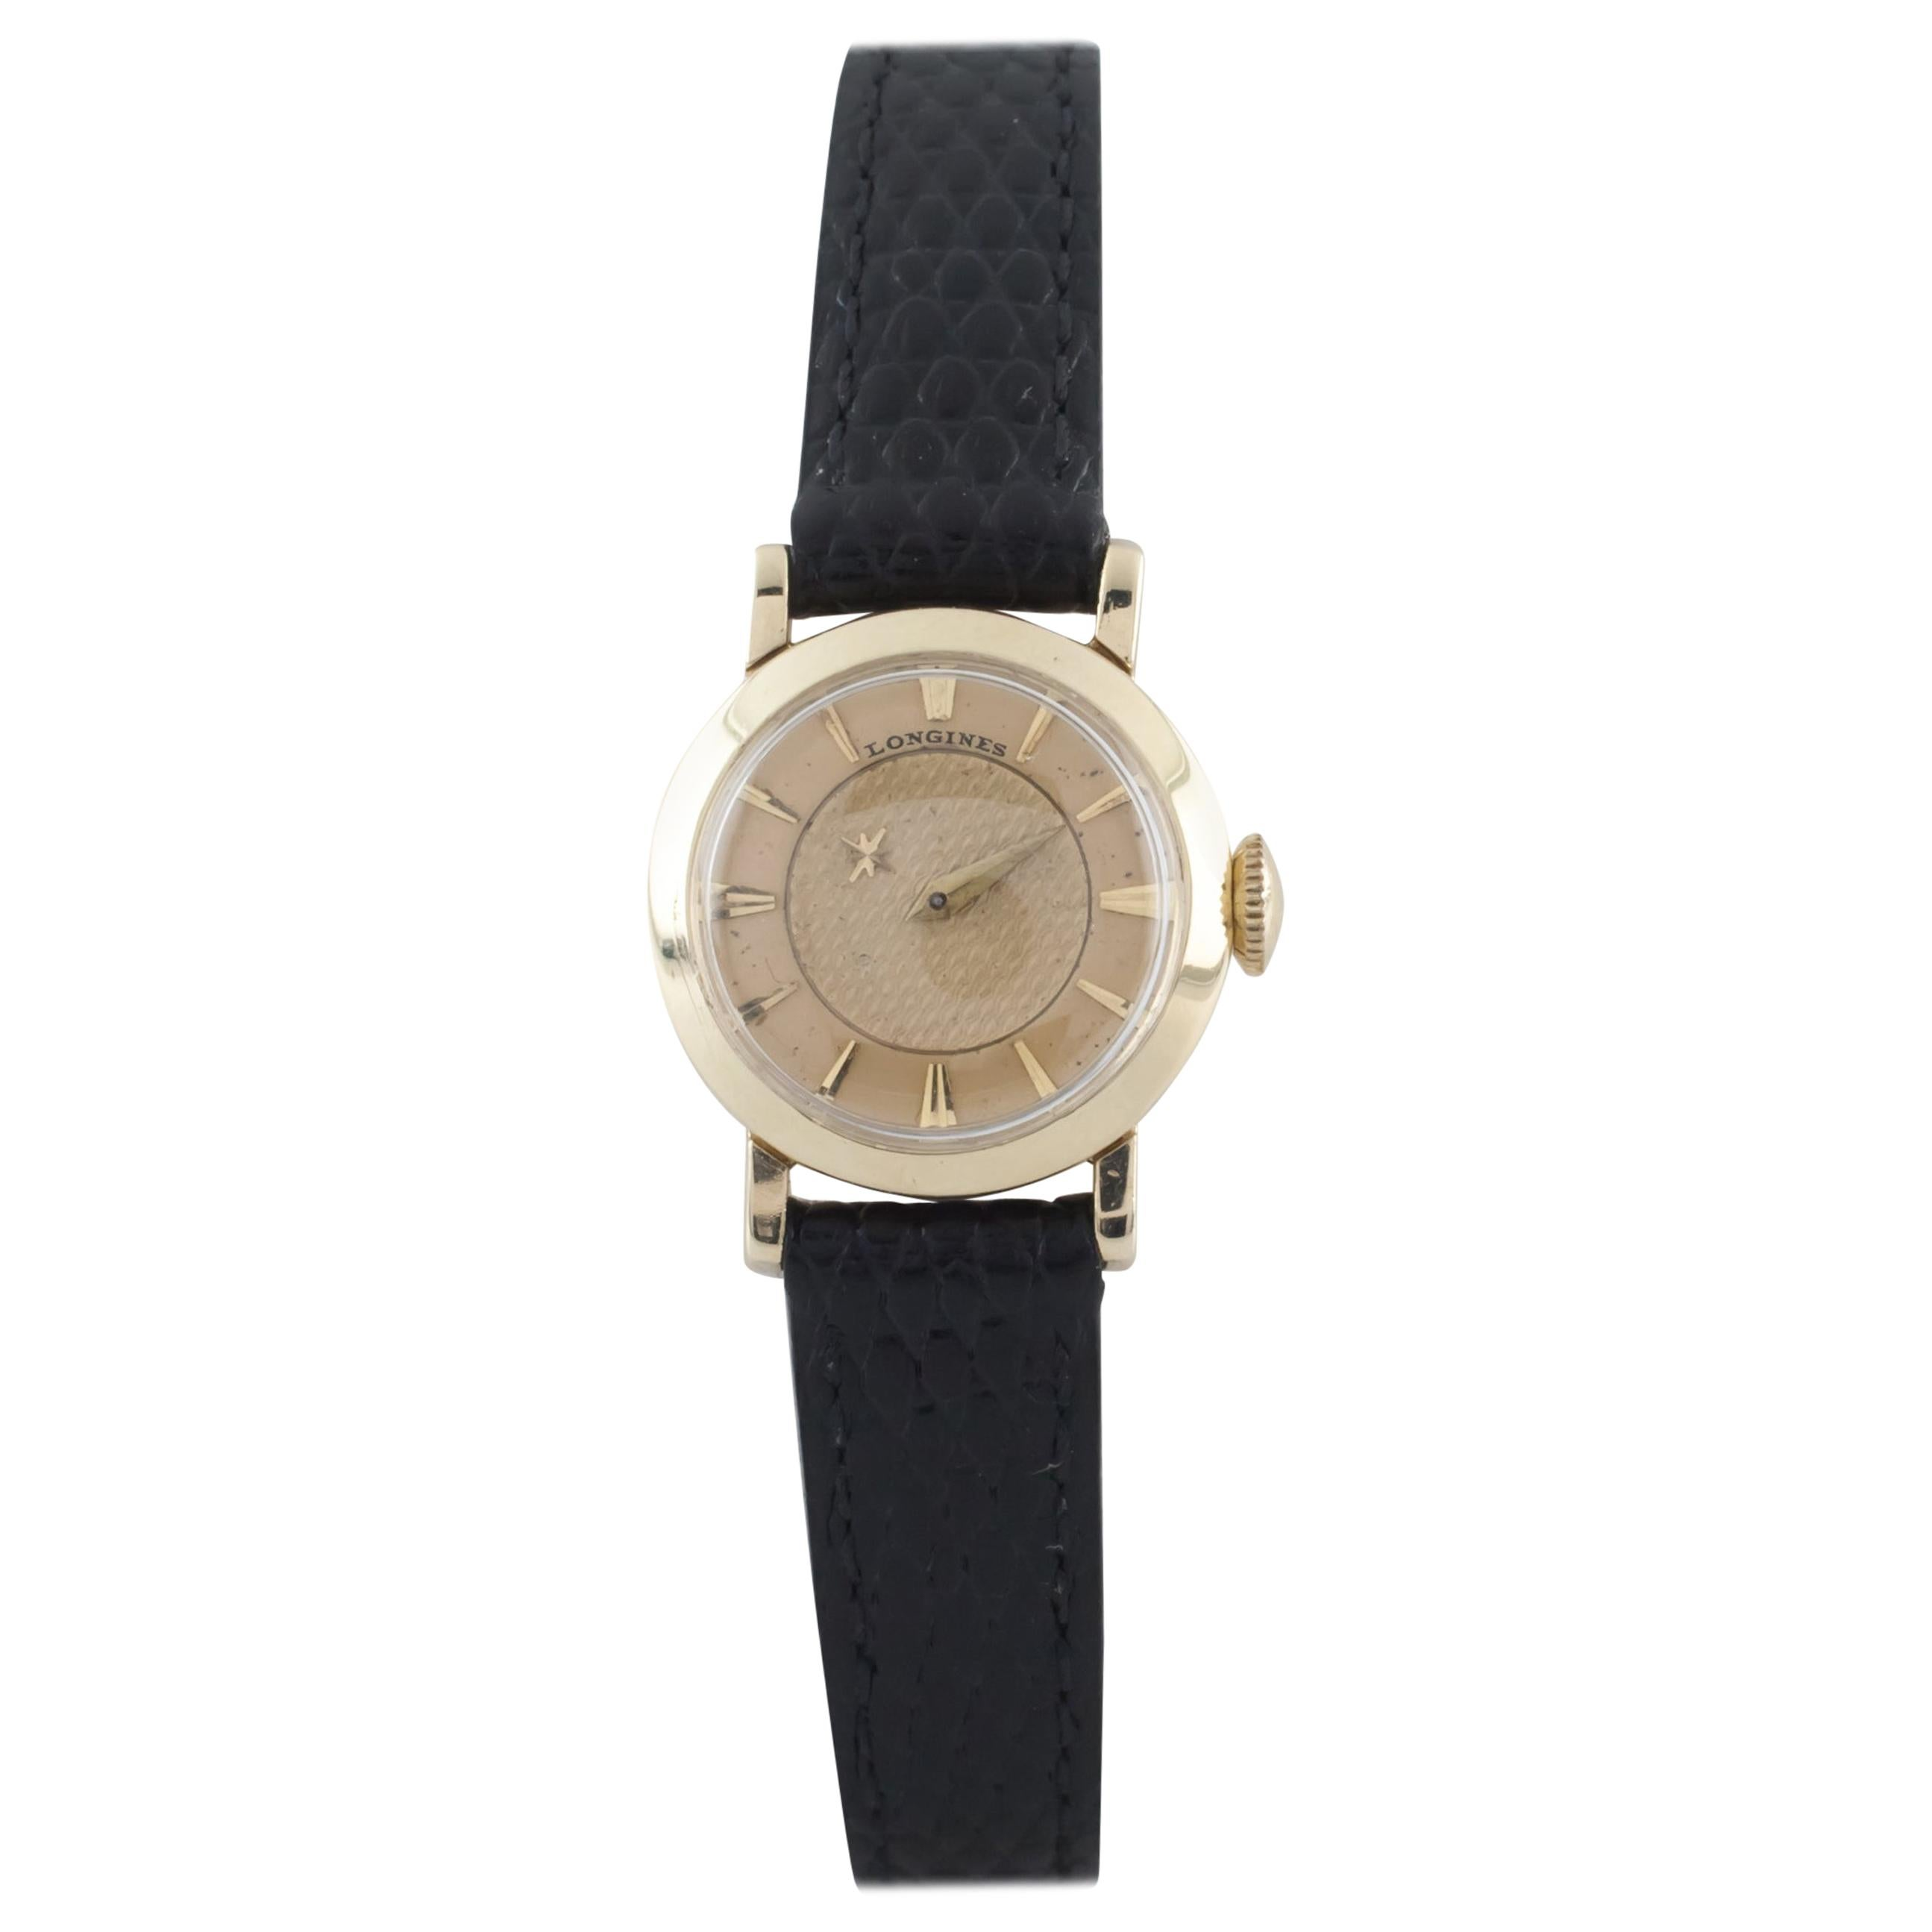 Longines 14 Karat Gold Women's Mystery Dial Hand-Winding Watch with Leather Band